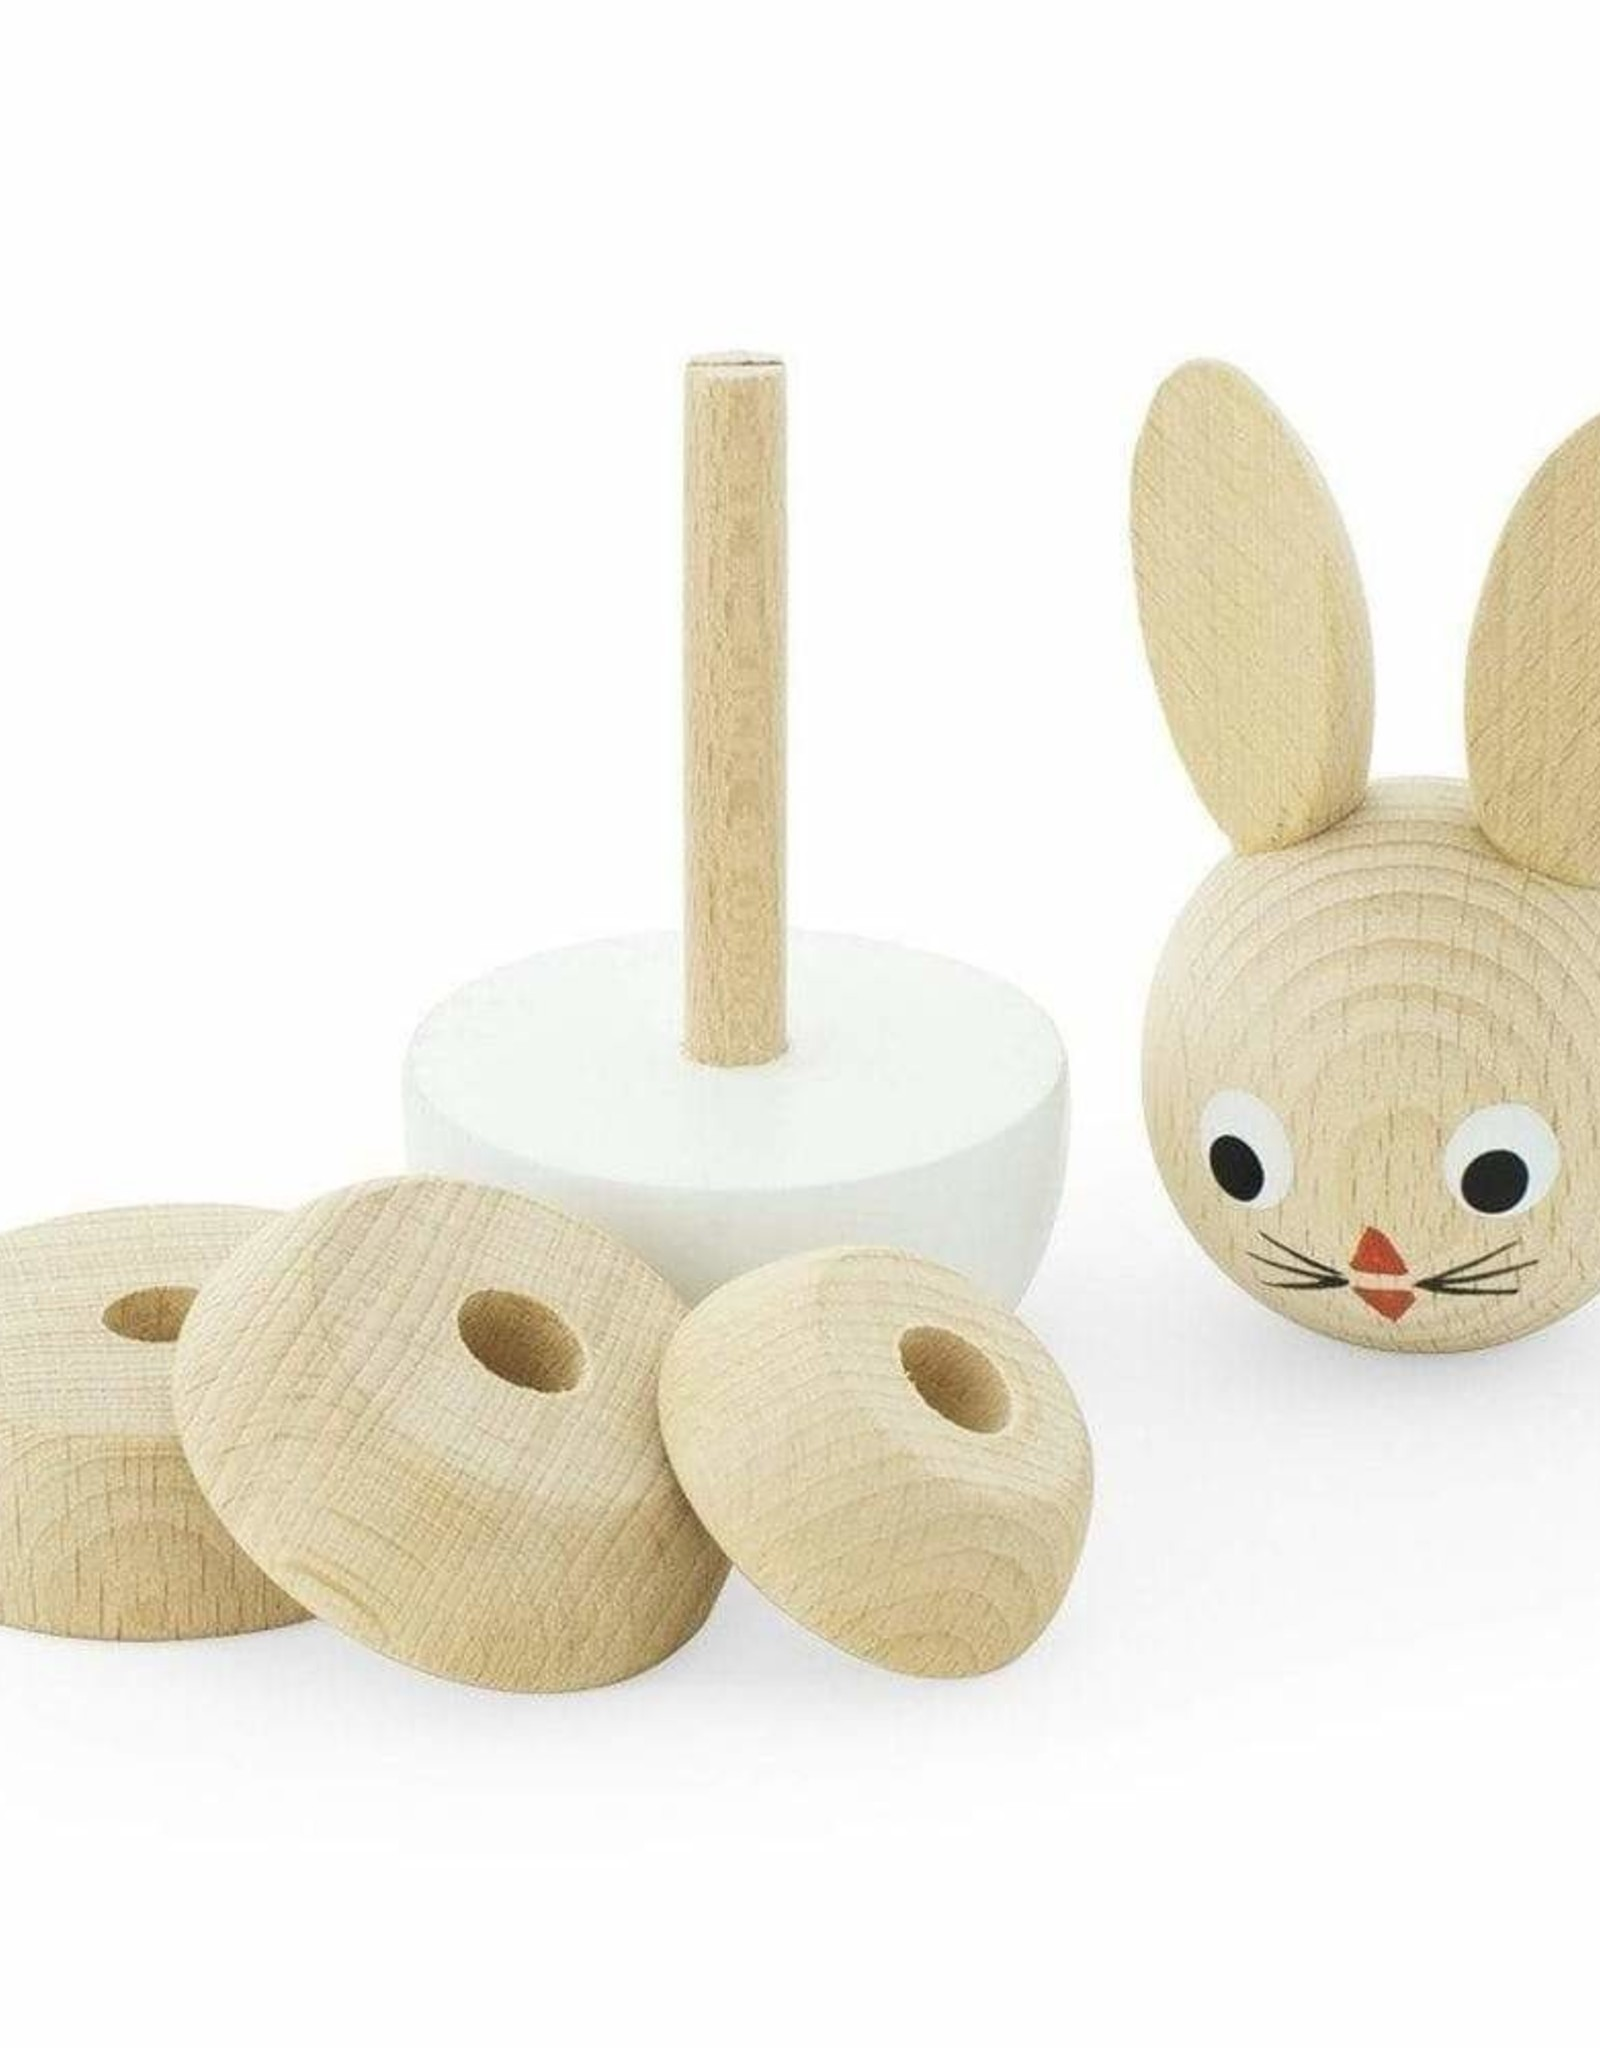 Happy Go Ducky Wooden Rabbit Stacking Puzzle - Bonnie